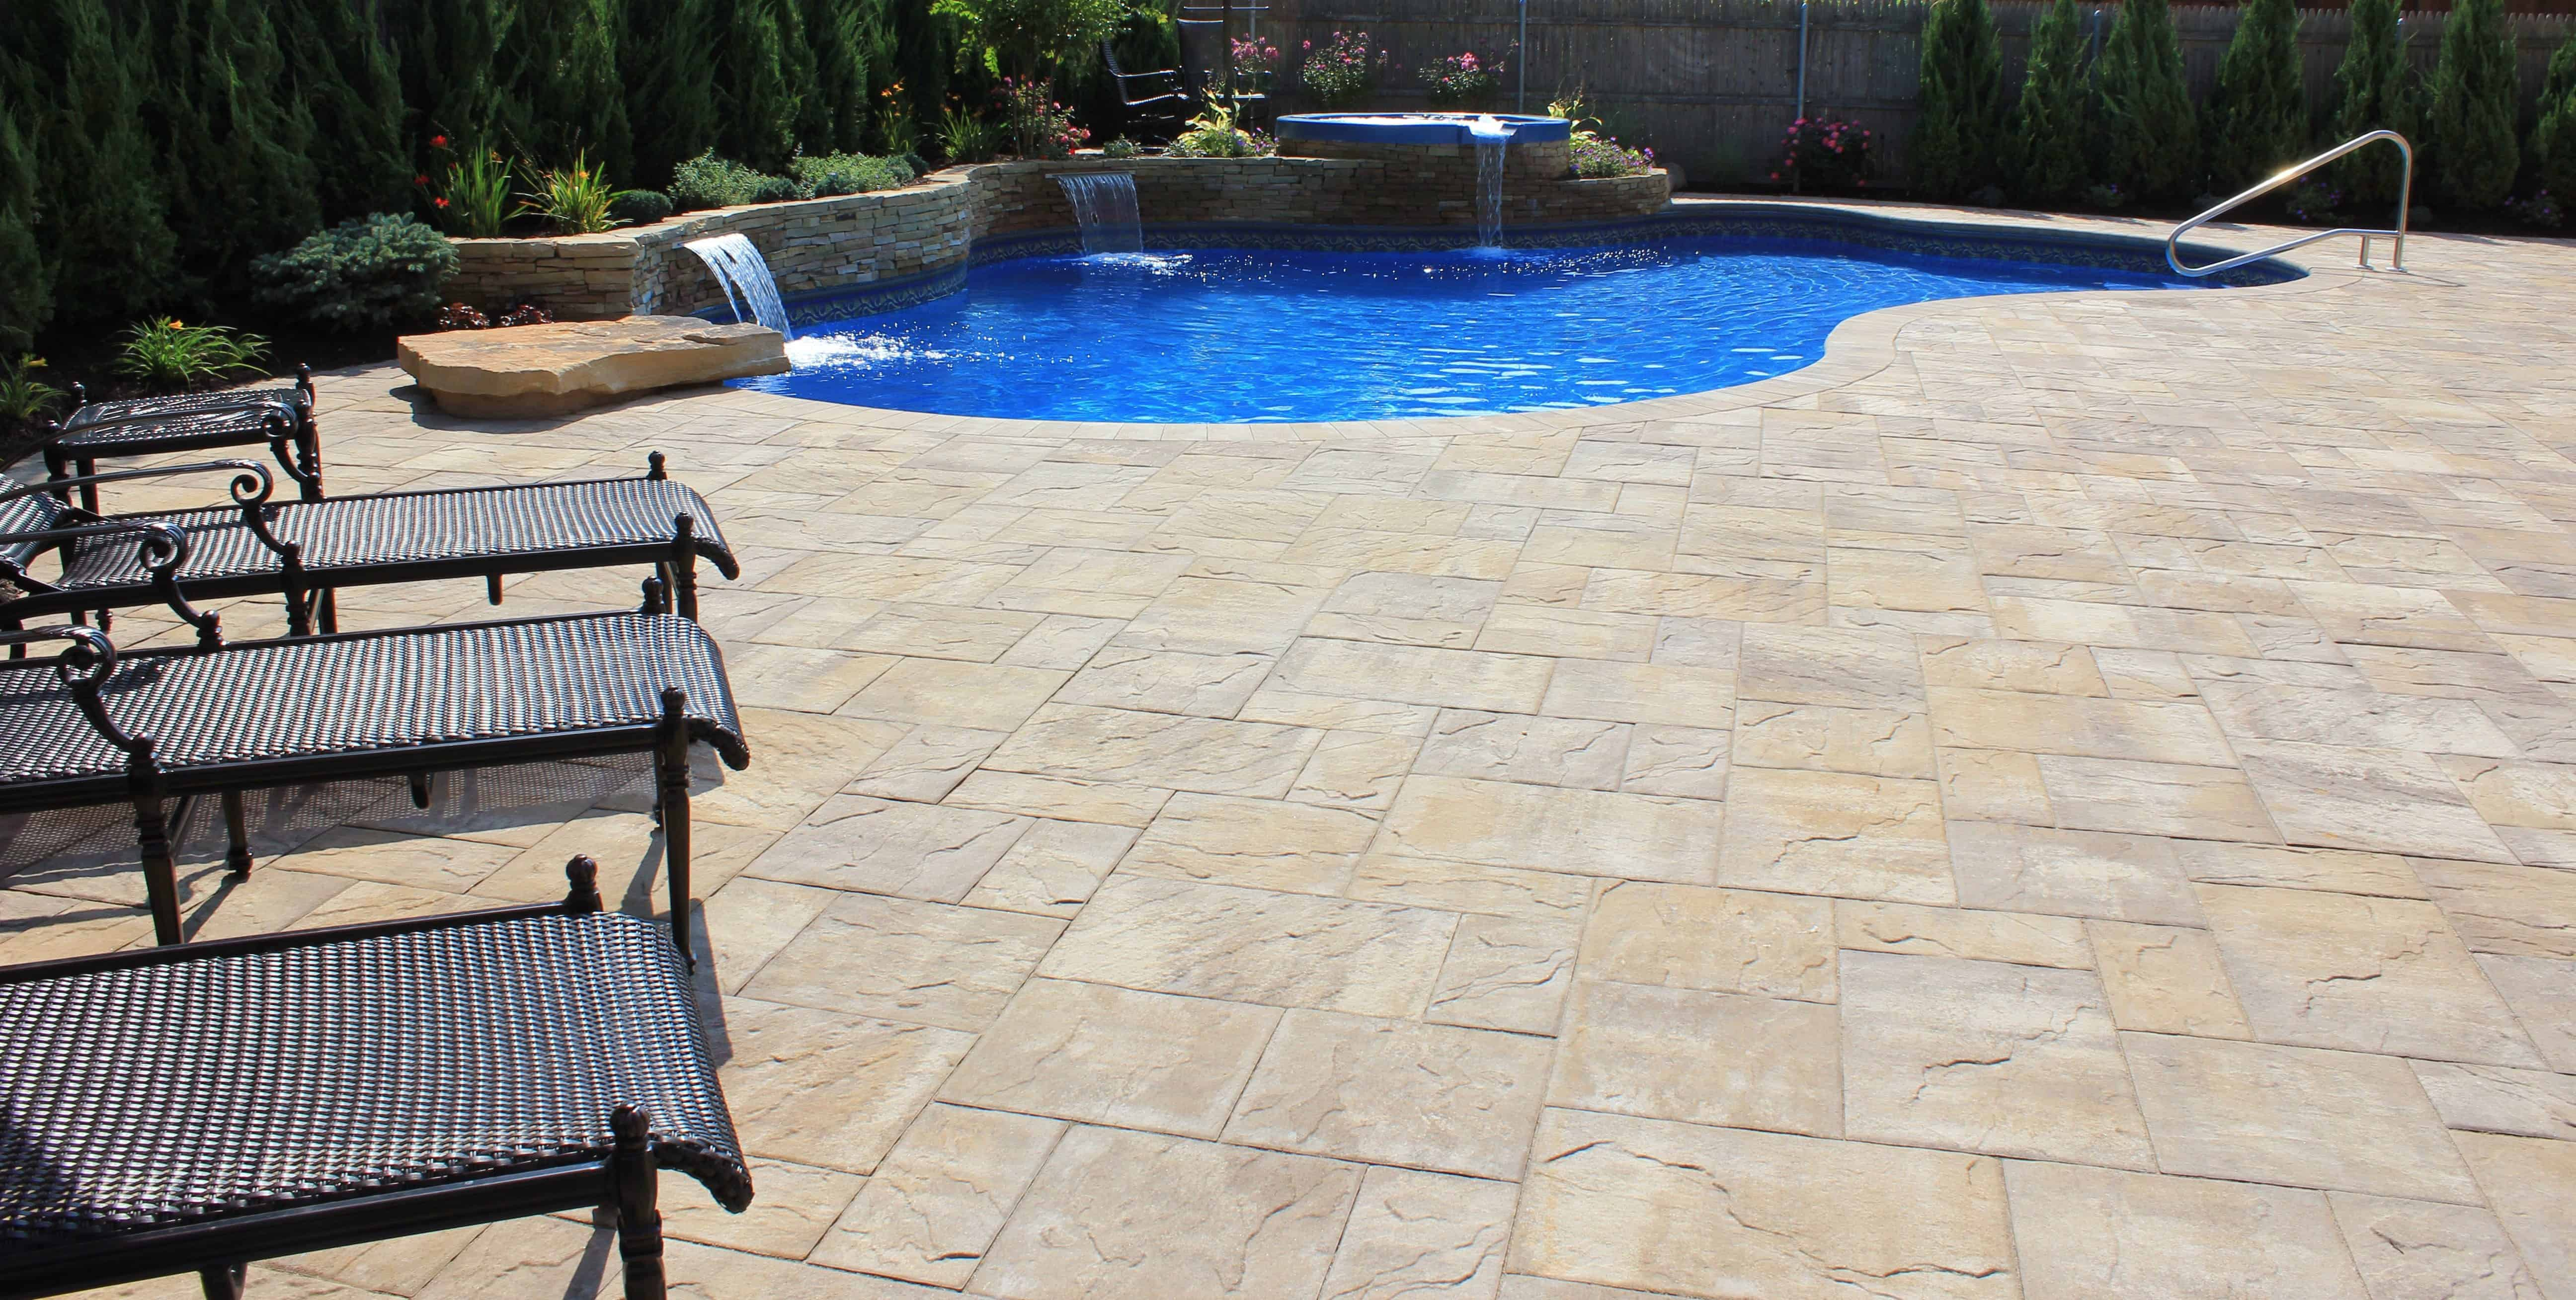 Cambridge Ledgestone XL - Sahara Chestnut Lite - Paver Pool Patio  - Merrick, Long Island NY